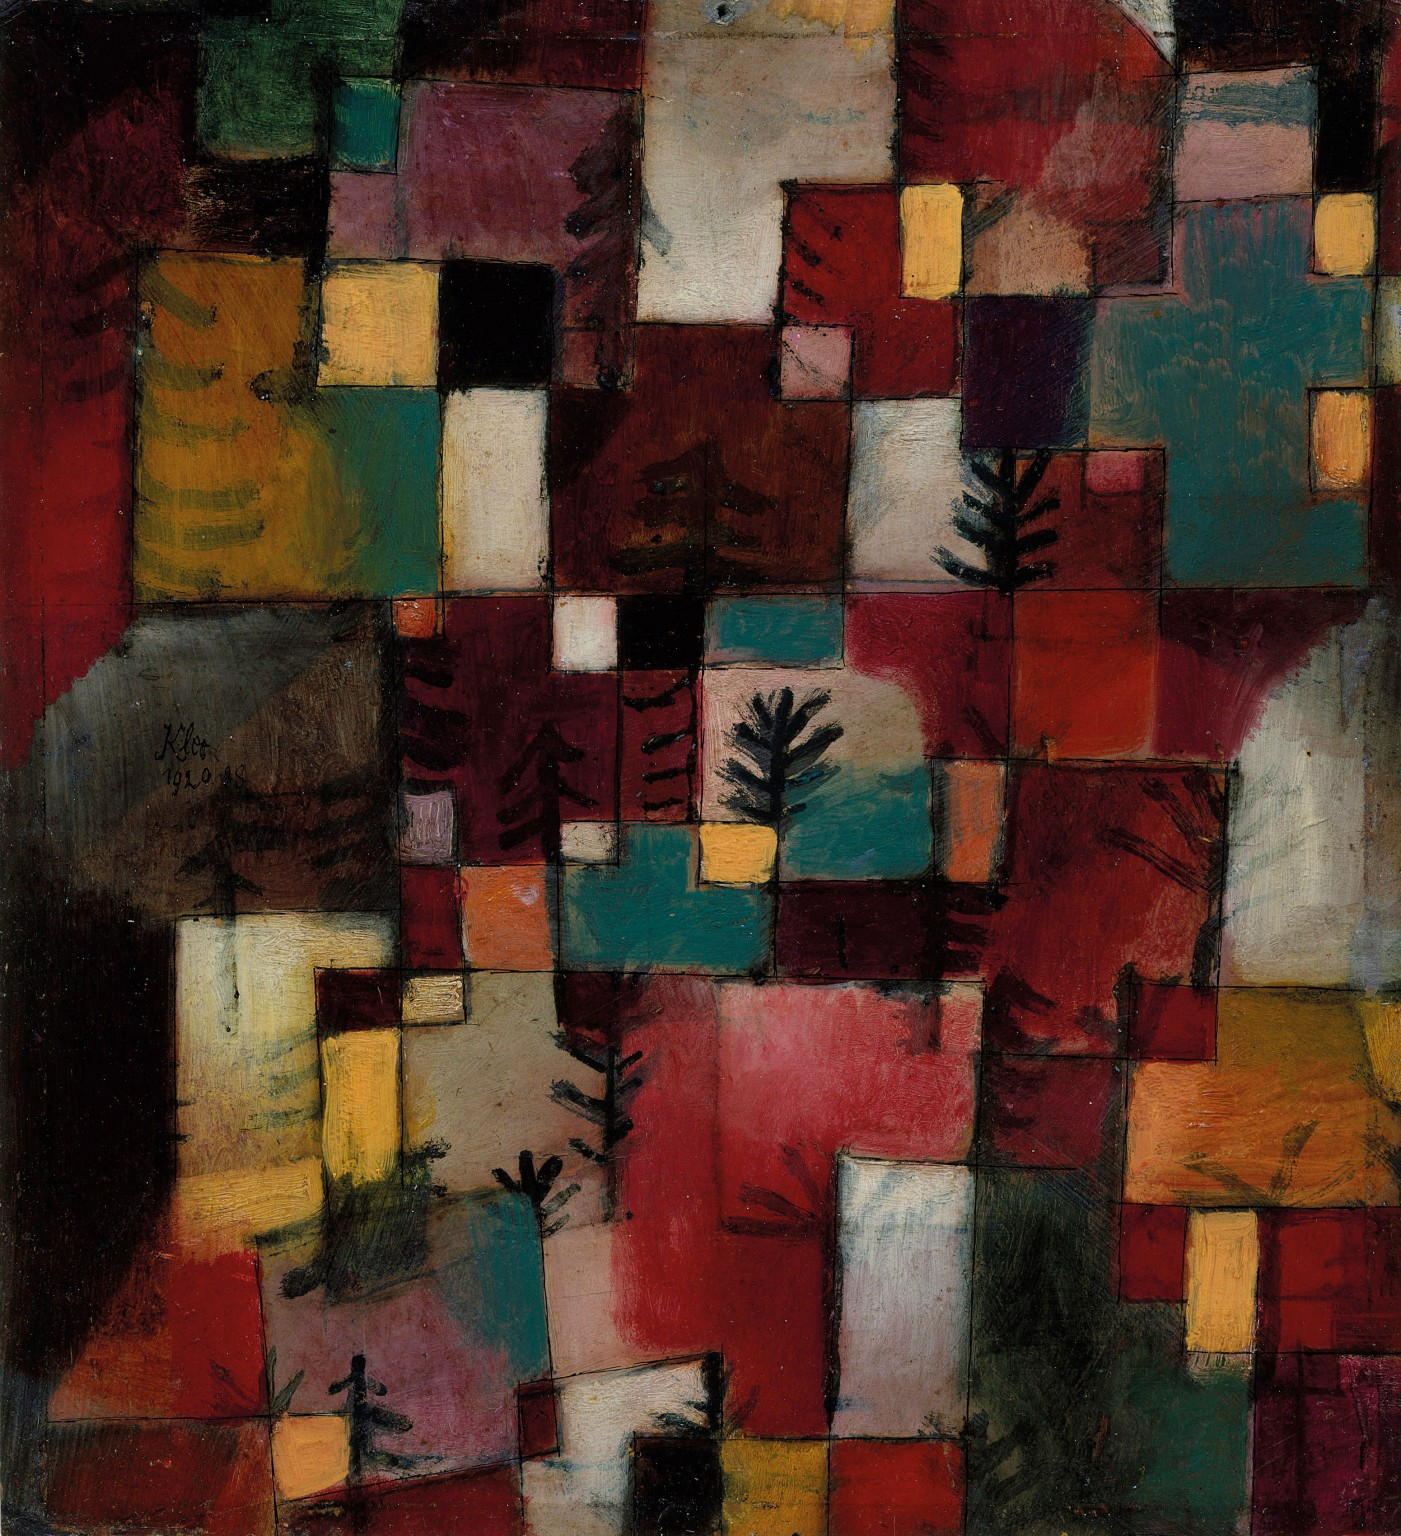 Paul Klee, Redgreen and Violet-Yellow Rhythms, 1920 (© The Metropolitan Museum o